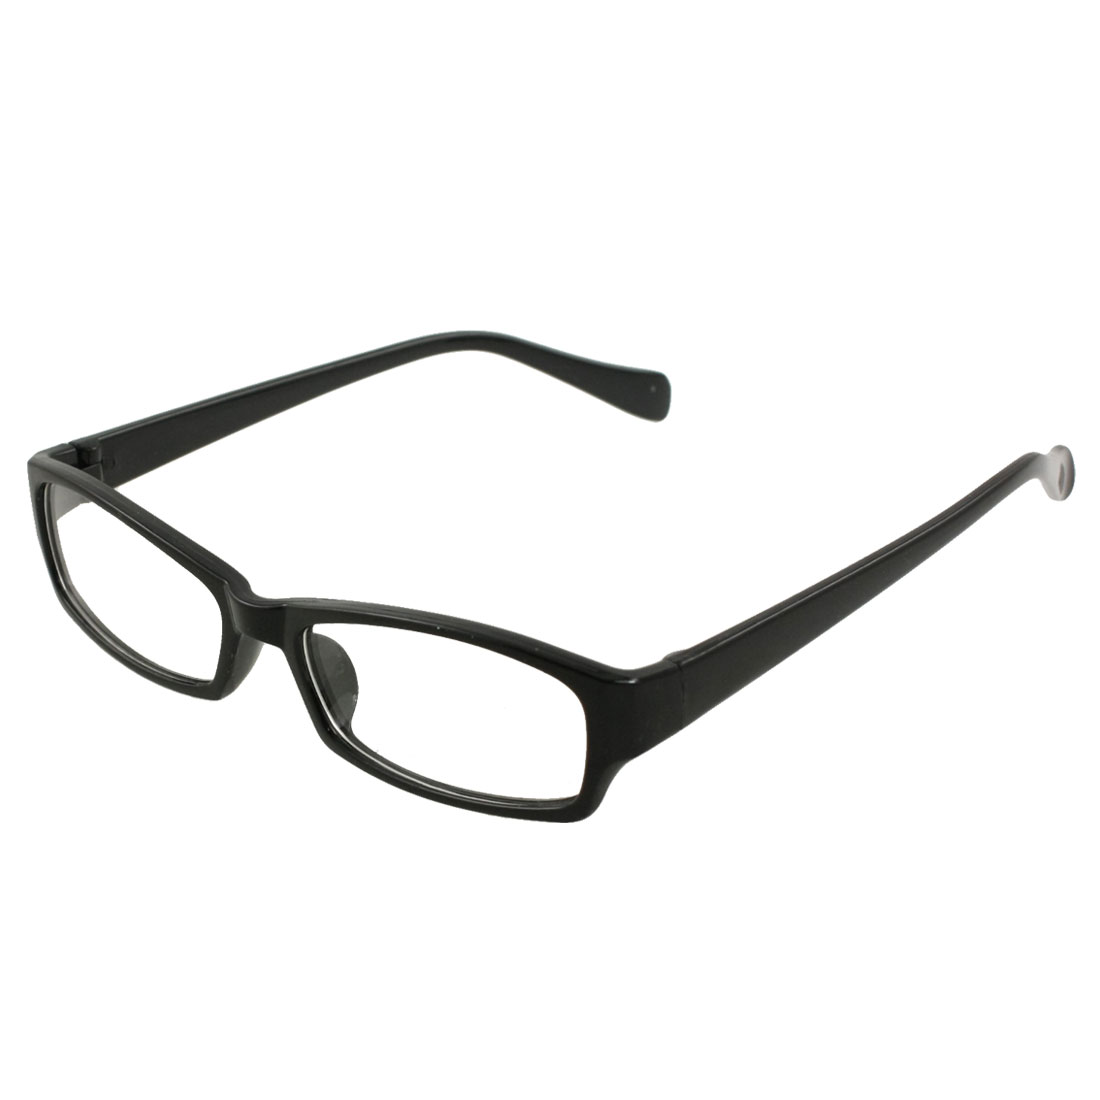 Man Woman Single Bridge Black Rectangle Frame Clear Lens Eyewear Glasses